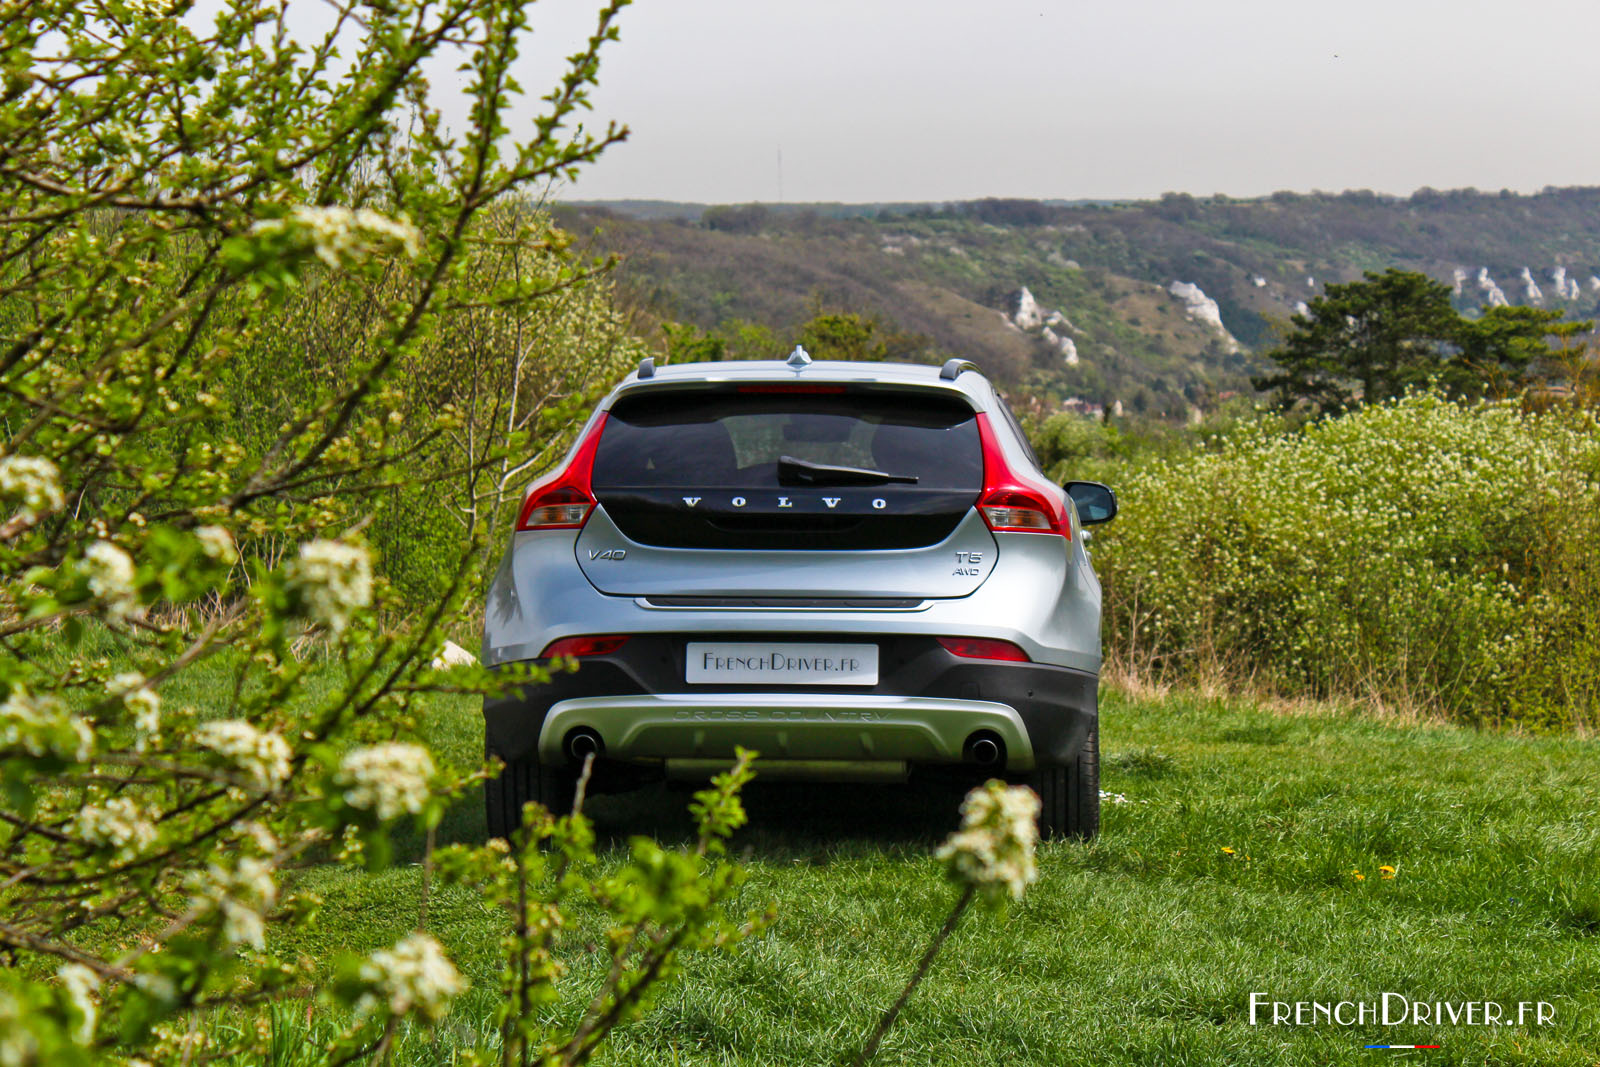 essai de la volvo v40 cross country t5 awd french driver. Black Bedroom Furniture Sets. Home Design Ideas